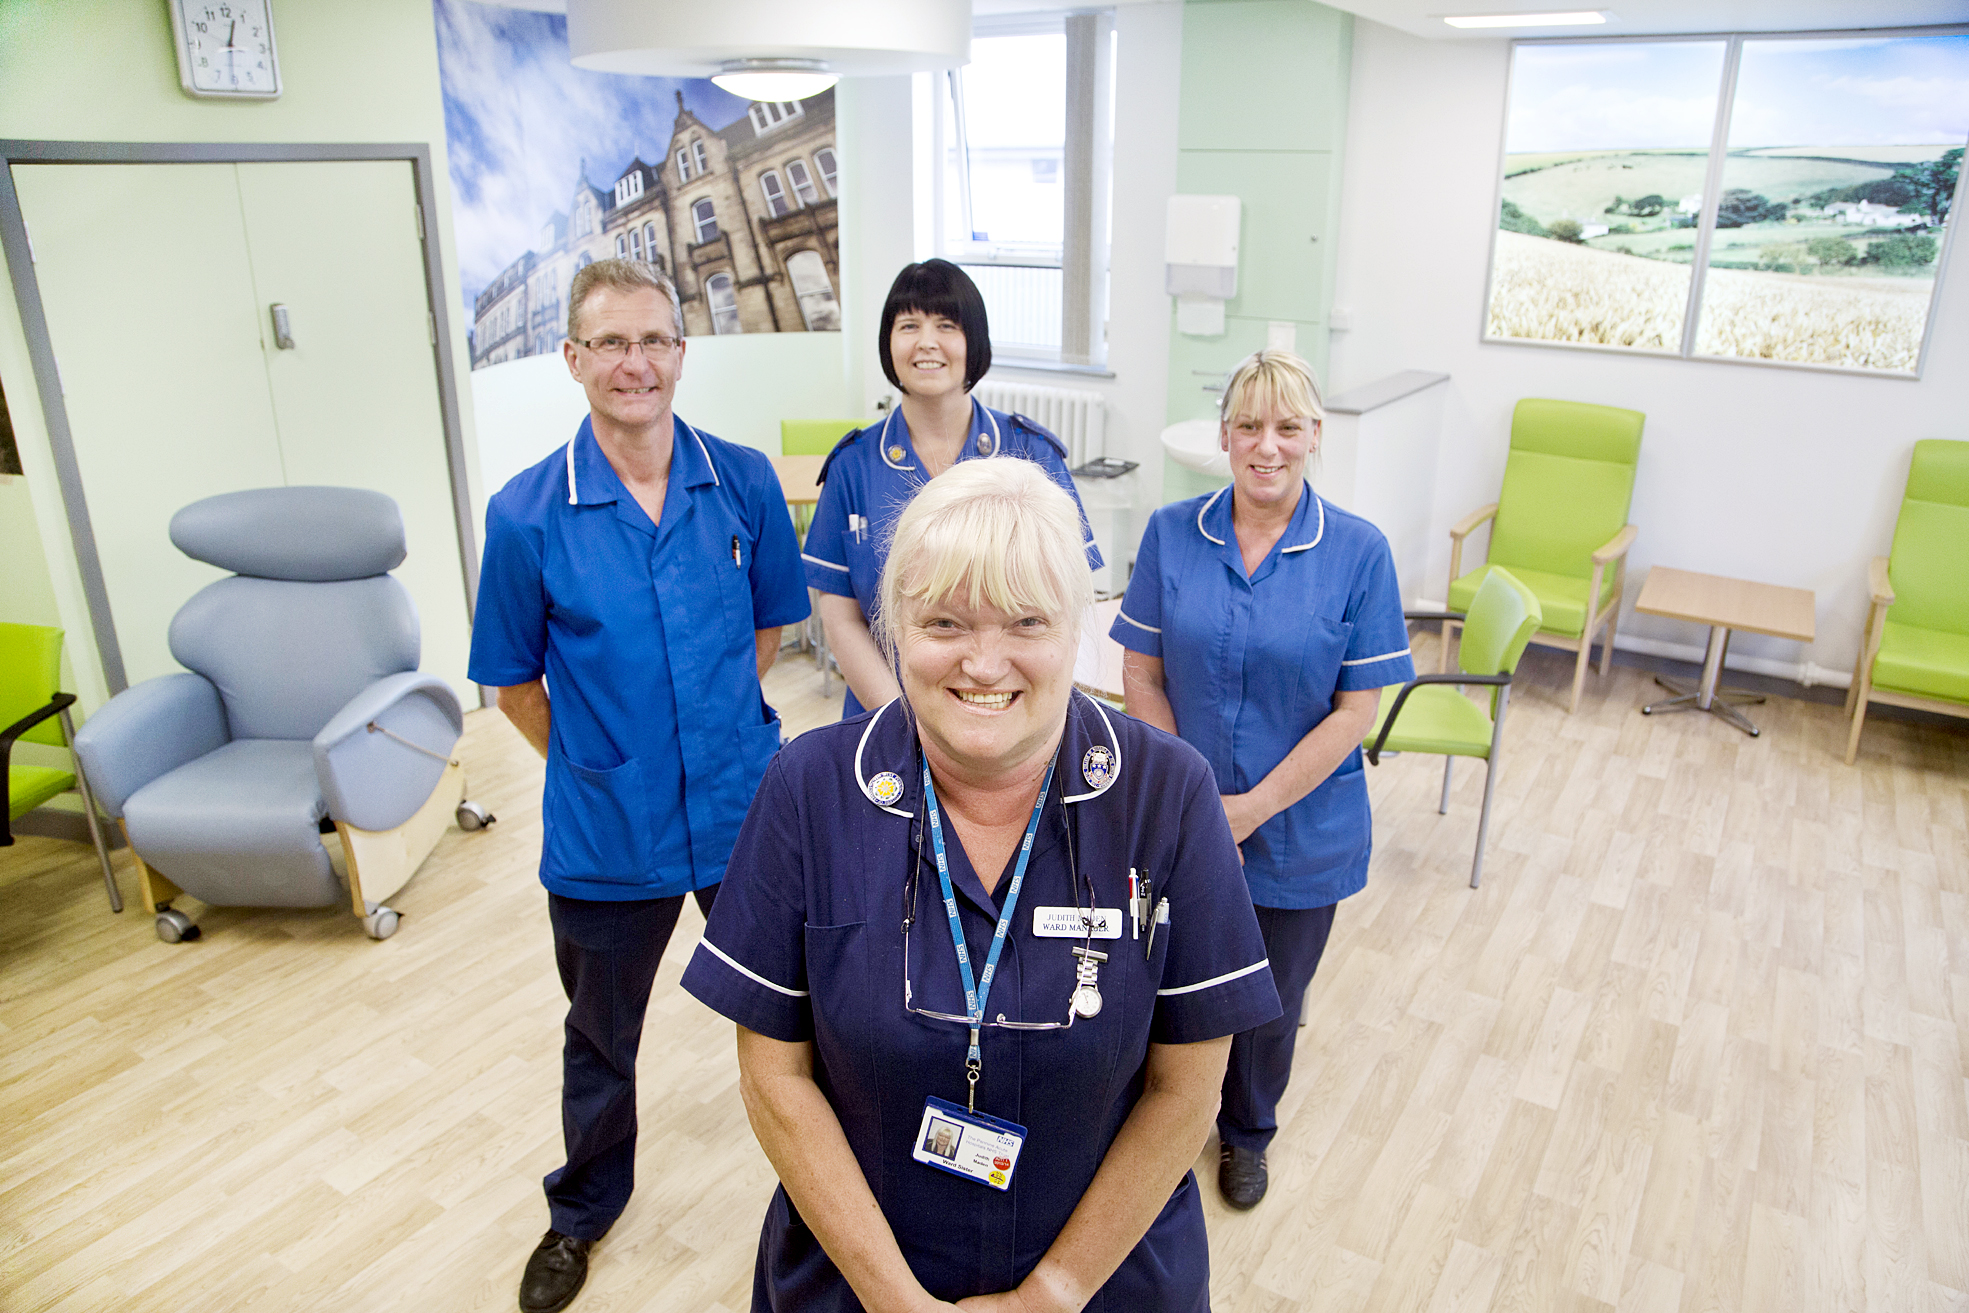 From left, staff nurse Paul Crocker, sister Mel Riordan and staff nurse Louise Worthington. Front, ward manager Judith Maden